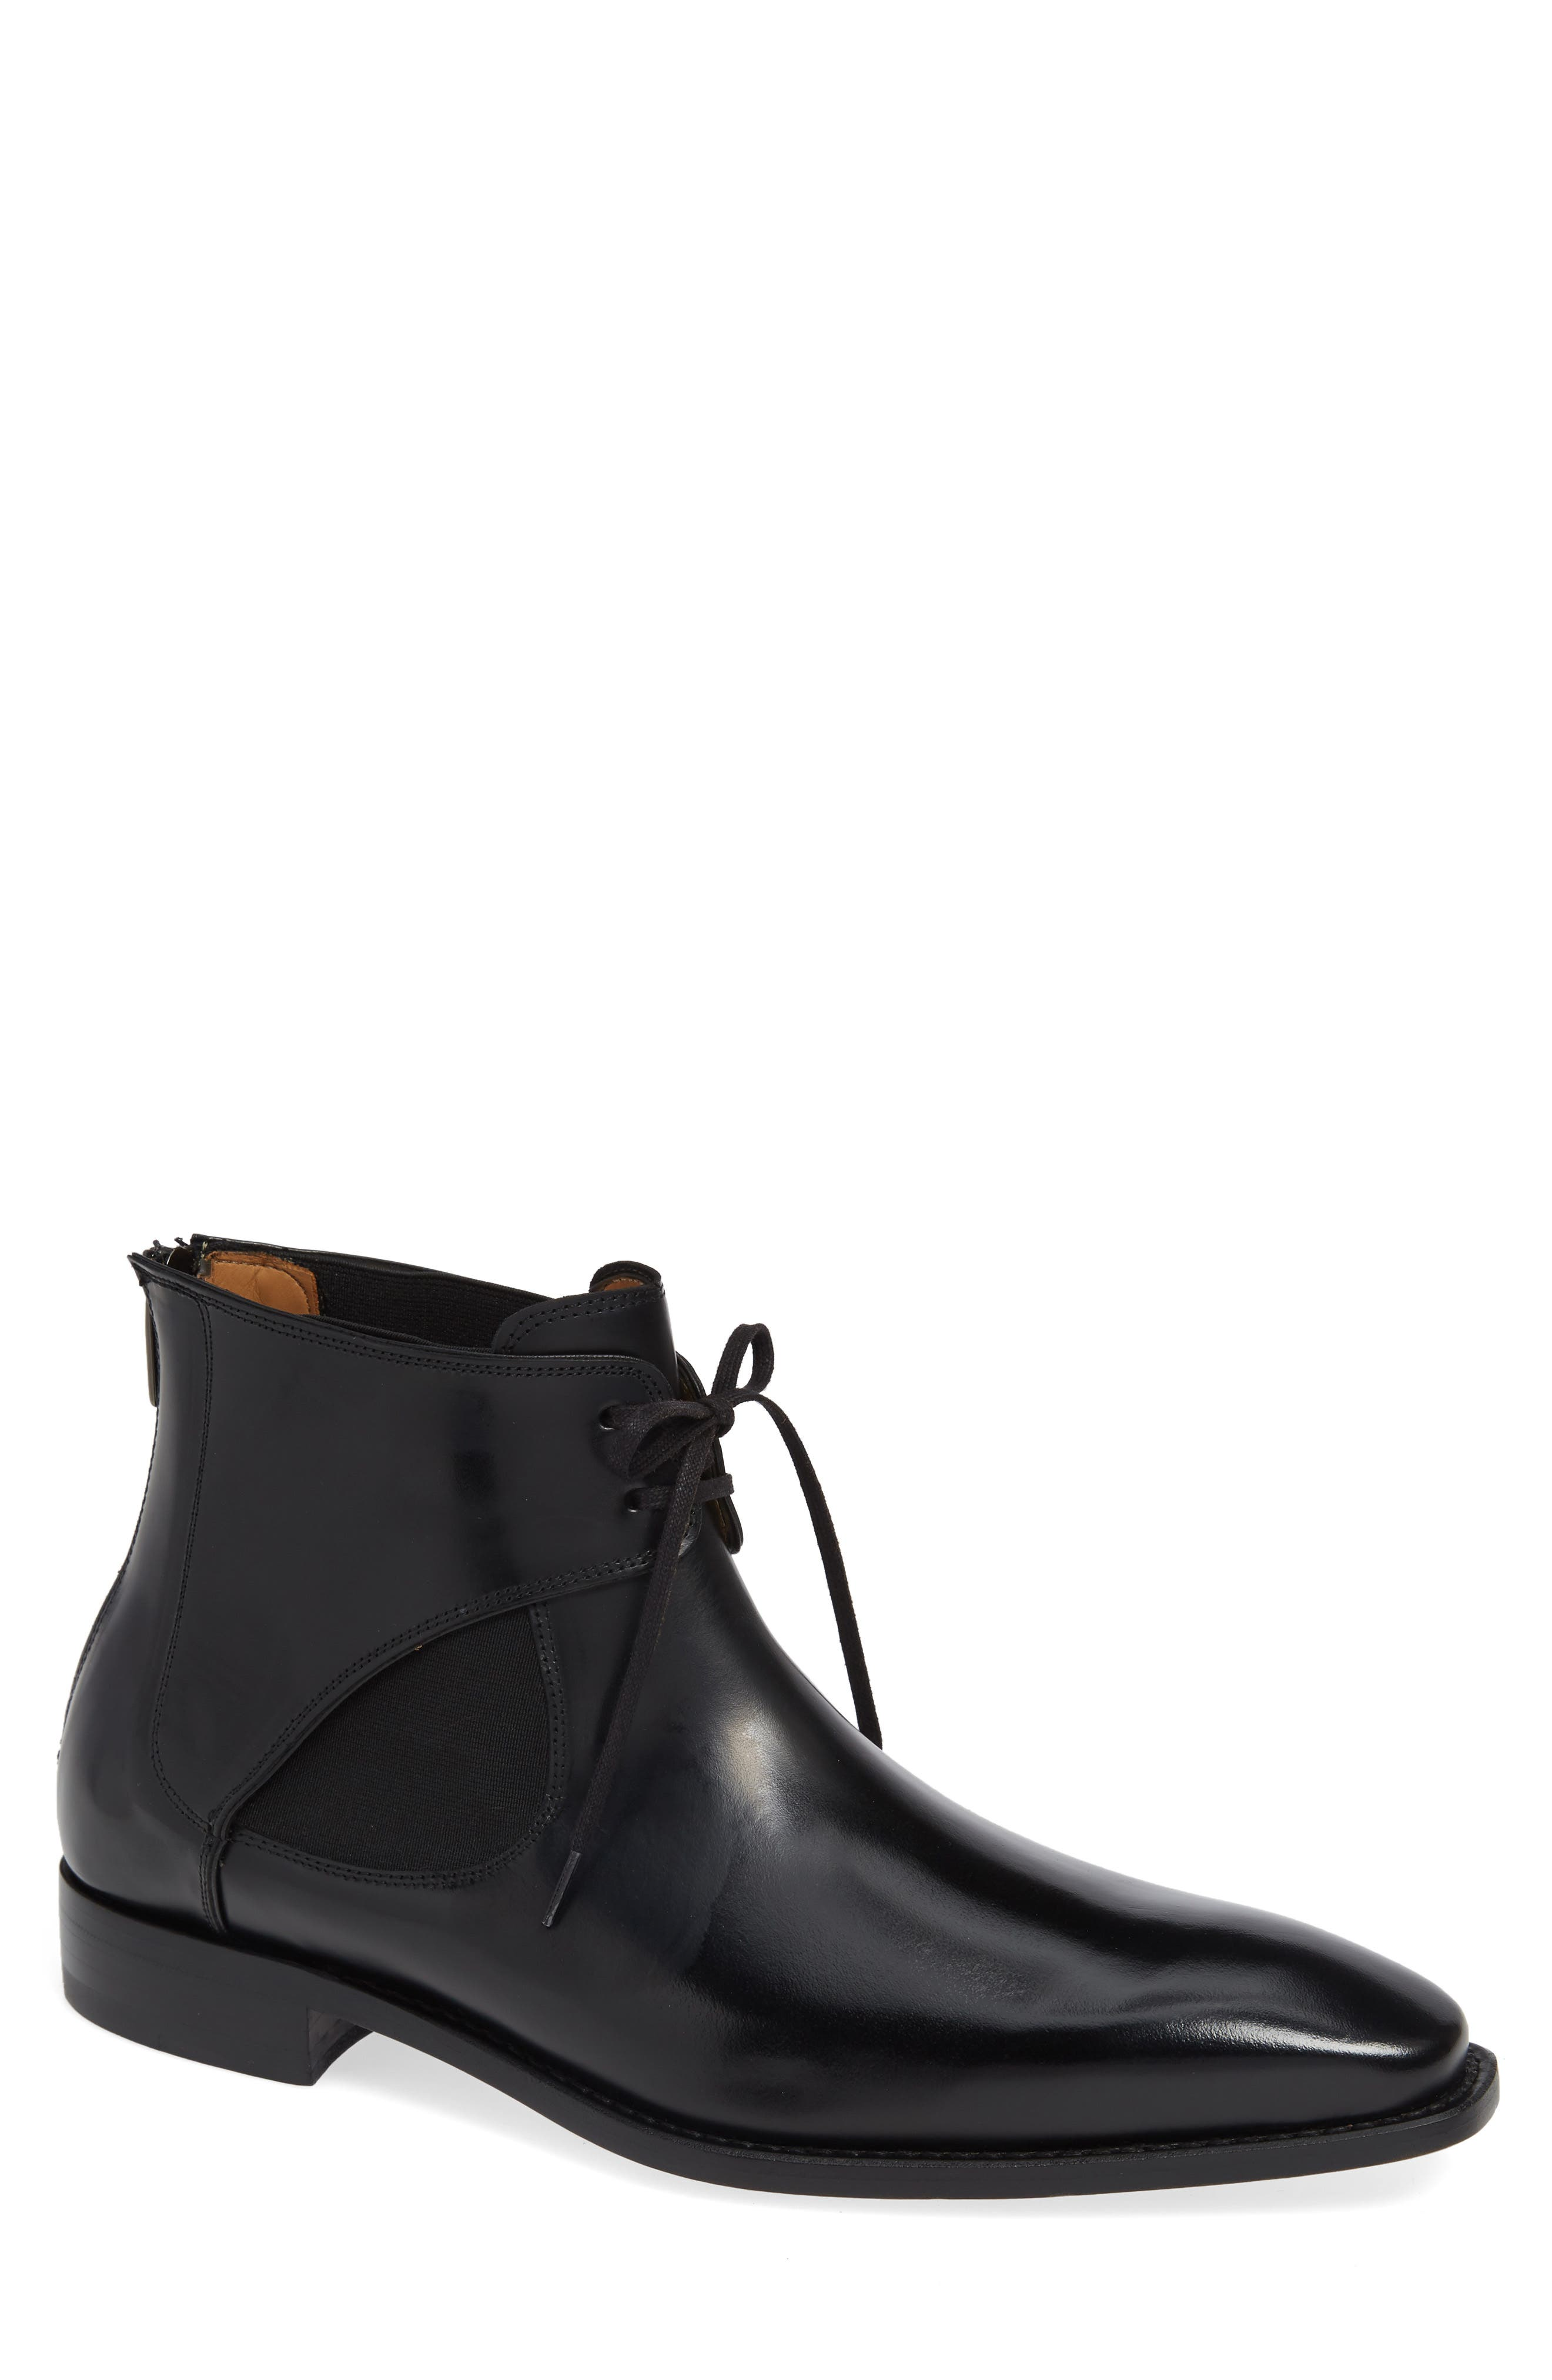 Mezlan Affleck Boot, Black